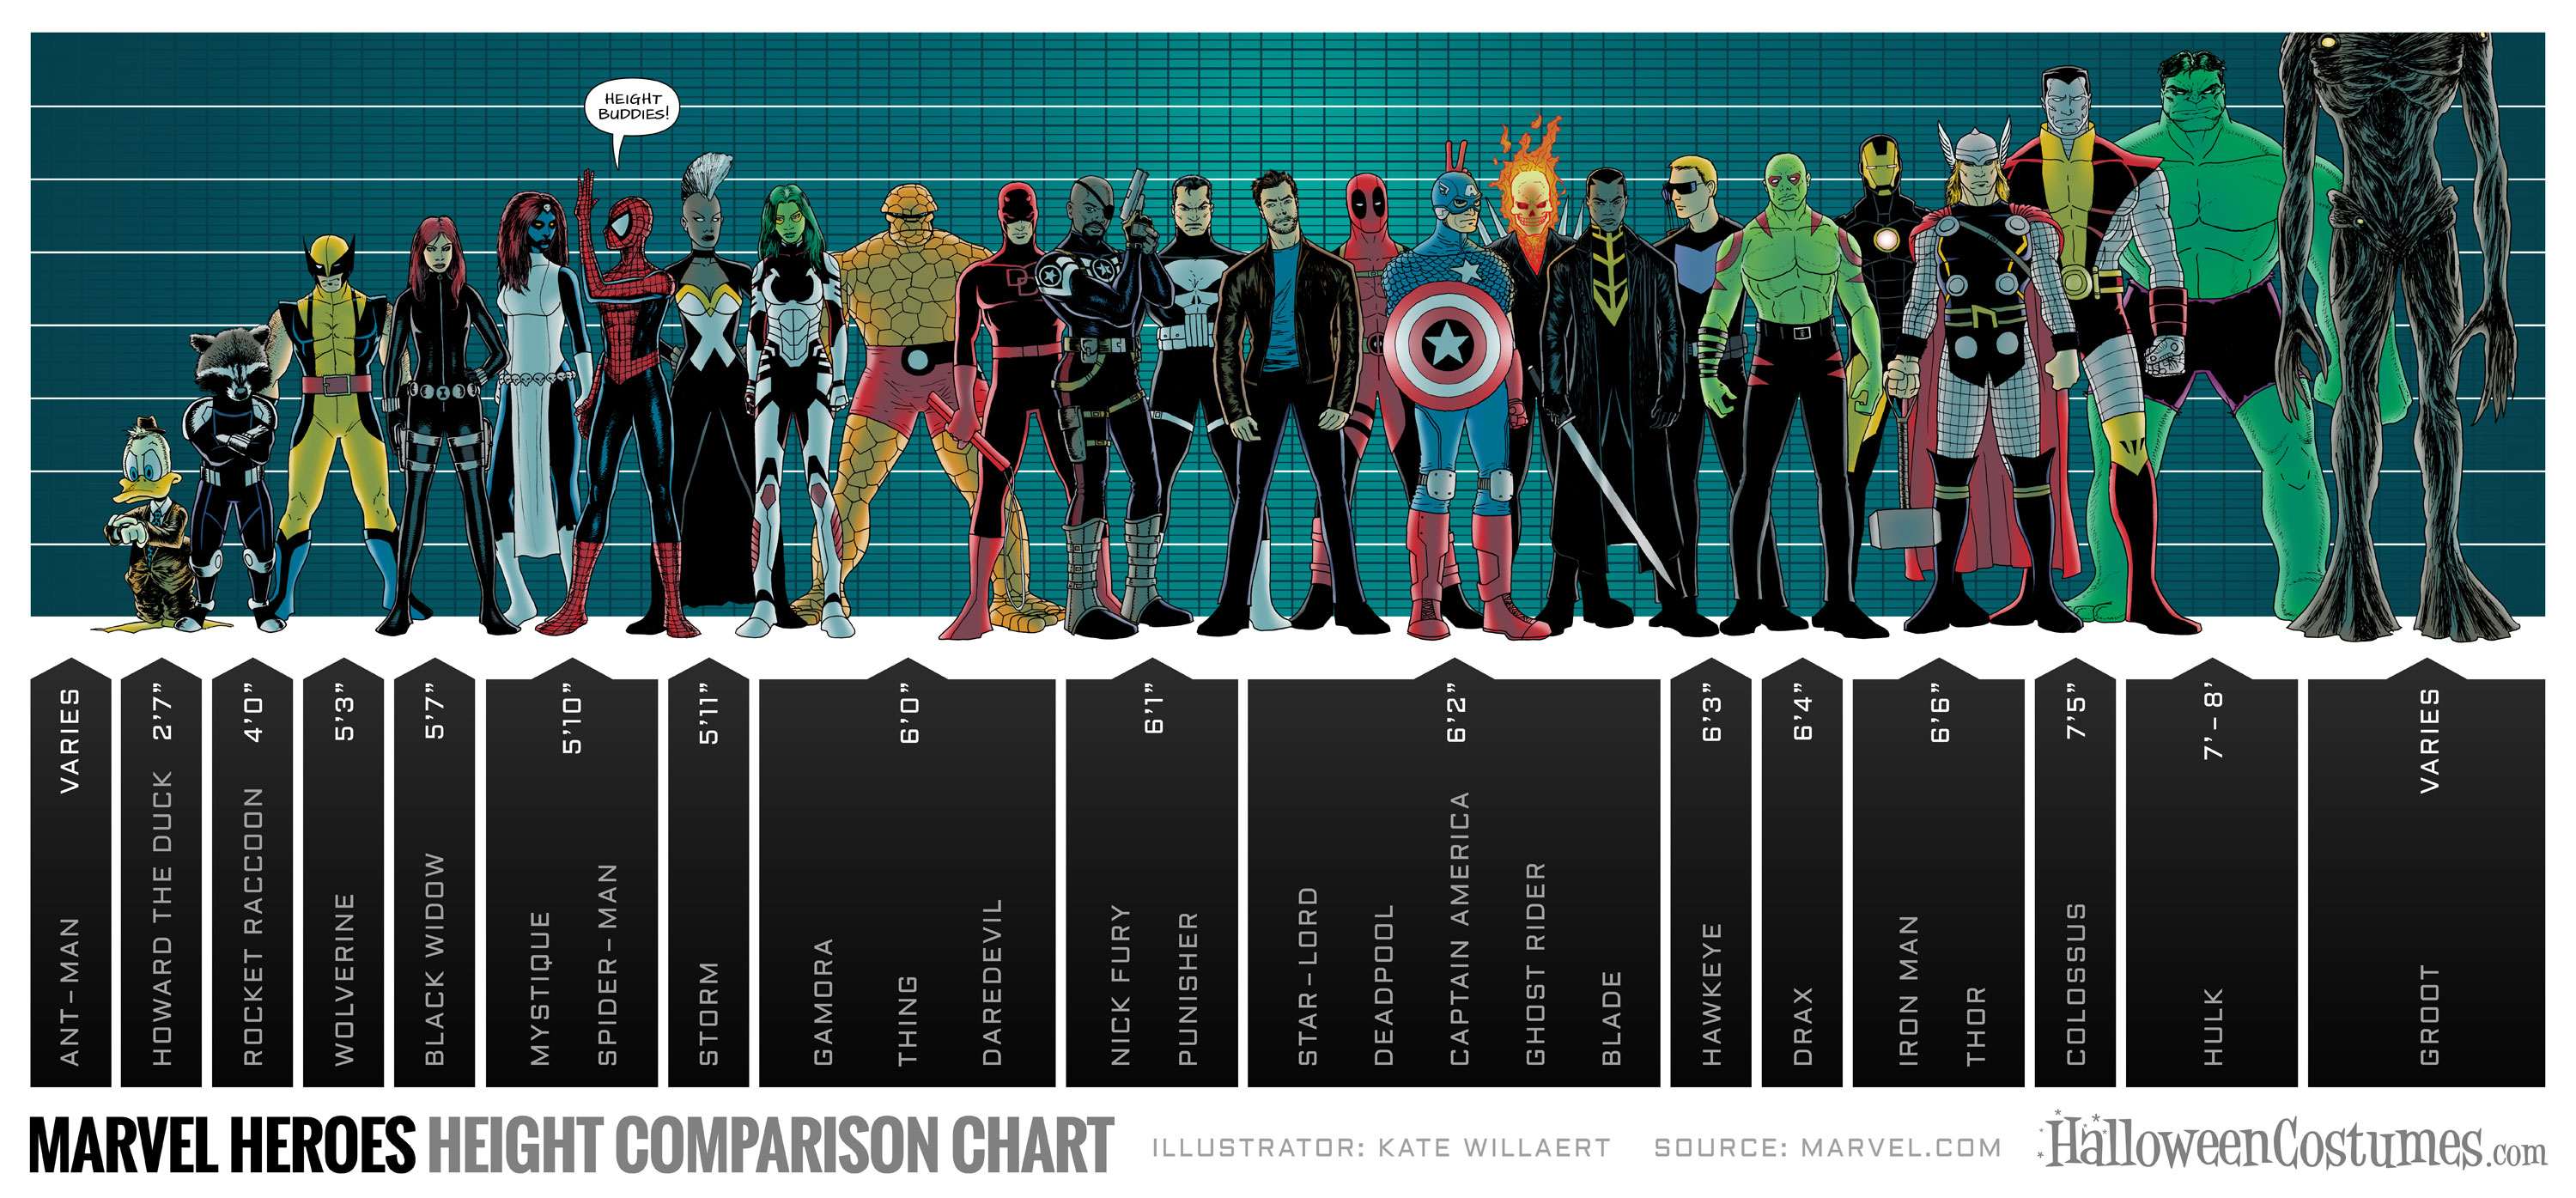 Superhero Height Chart [Infographic]  Halloween Costumes Blog